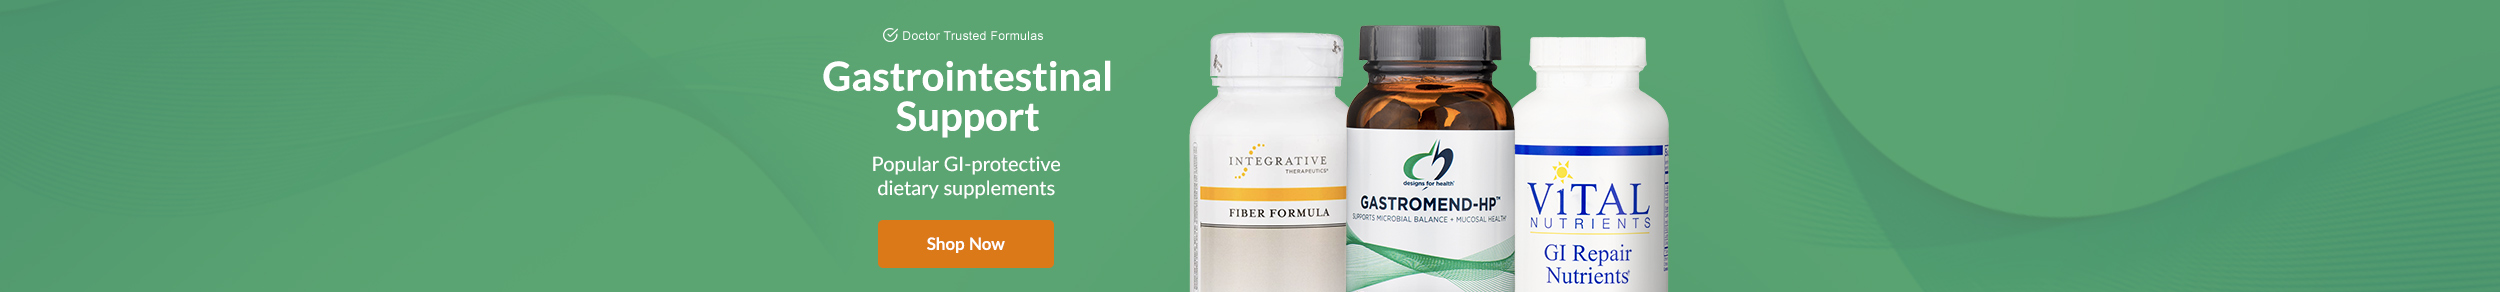 Gastrointestinal Support - Popular GI-protective dietary supplements